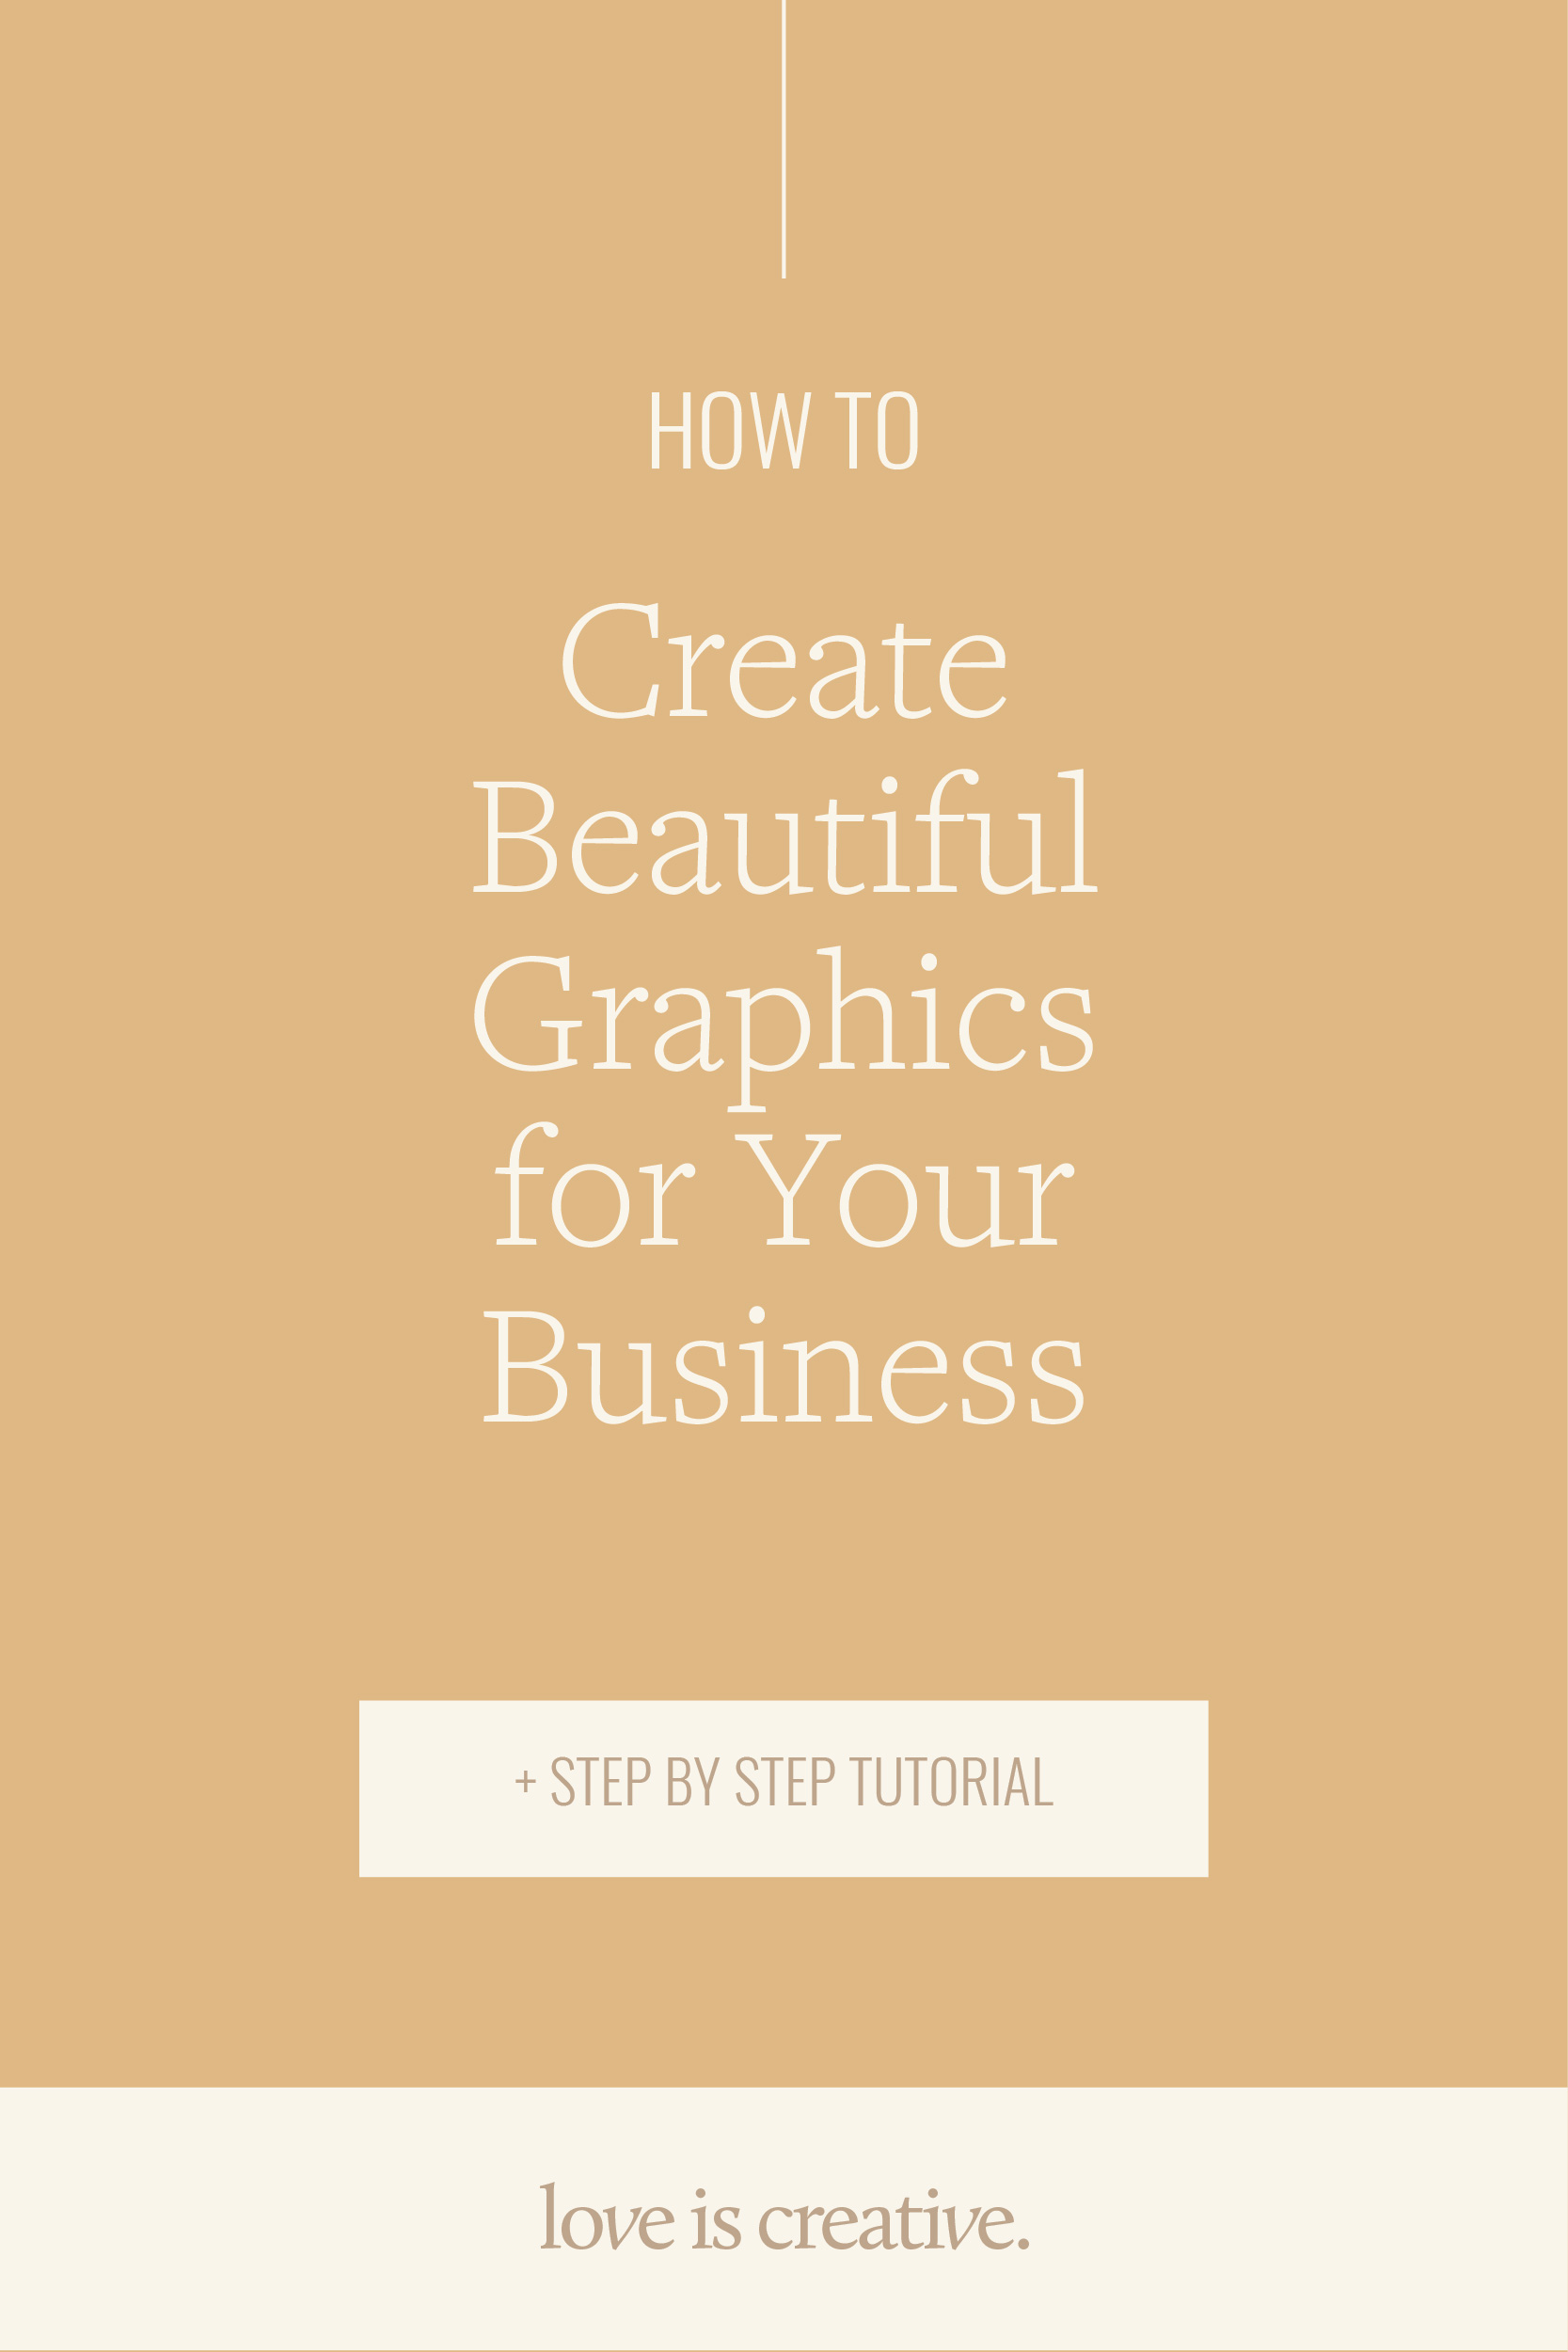 HOW TO CREATE BEAUTIFUL GRAPHICS FOR YOUR BUSINESS - Here I'm showing HOW you're going to approach the most common design free tools FOR your business, and give you tips and tricks to use them effectively. I'll also give you PRODUCTIVITY suggestions to organise your business' design set-up so you're able to cruise every time you need to create One.Freaking.More graphic for your business. Your time is gold, and you want to invest it in doing what you love and growing your business. Let's do it in a way that your graphics don't suffer. Deal?